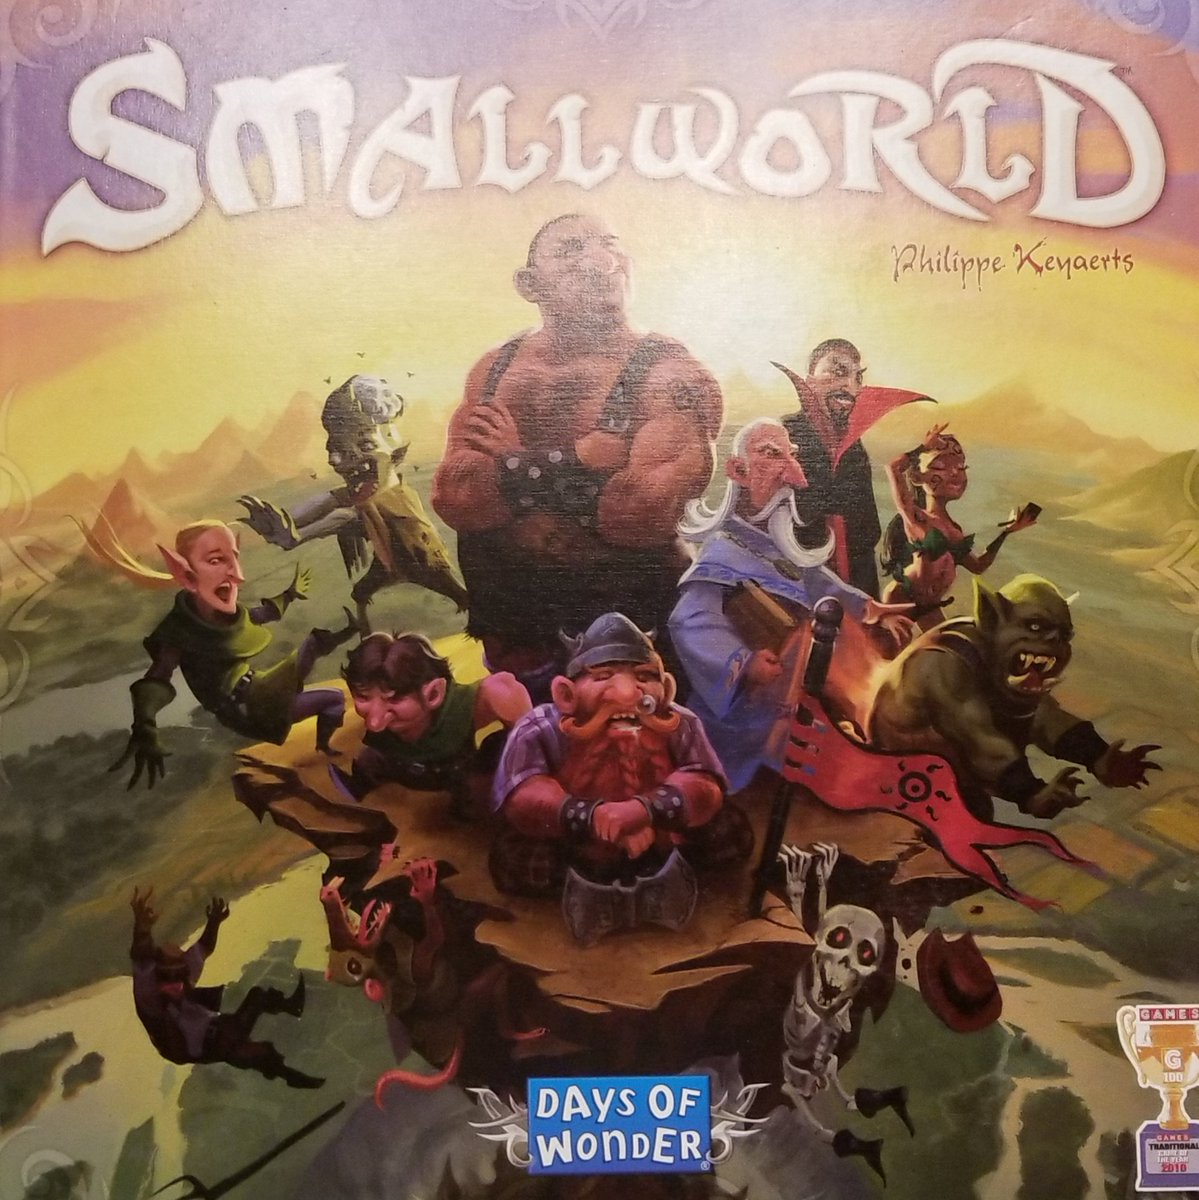 Playing Smallworld by #PhilippeKeyaerts and @days_of_wonder ......in my mind its Risk on speedpic.twitter.com/hnqvoeVamV